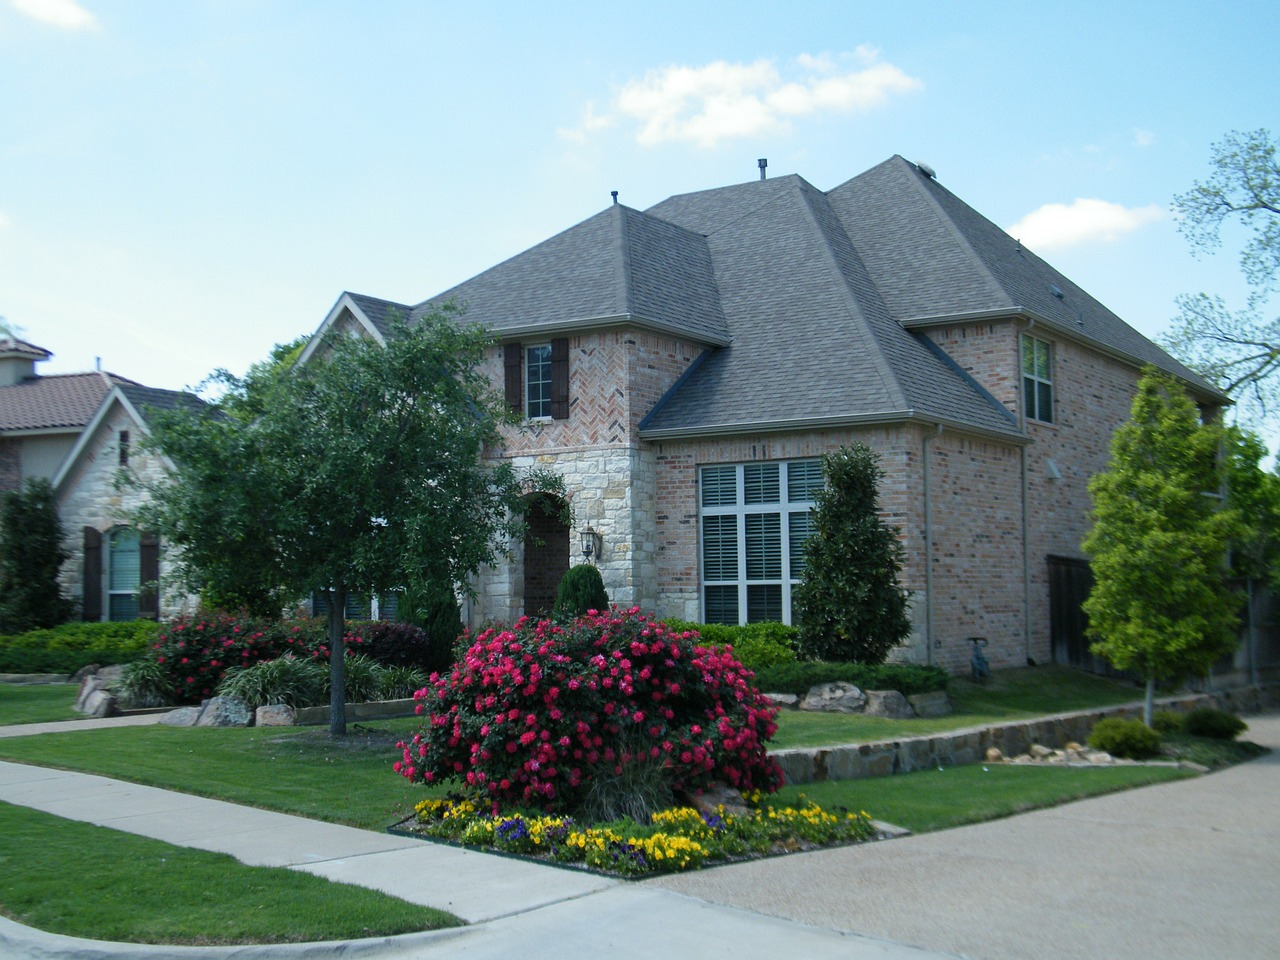 springboro oh area information for home buyers future residents